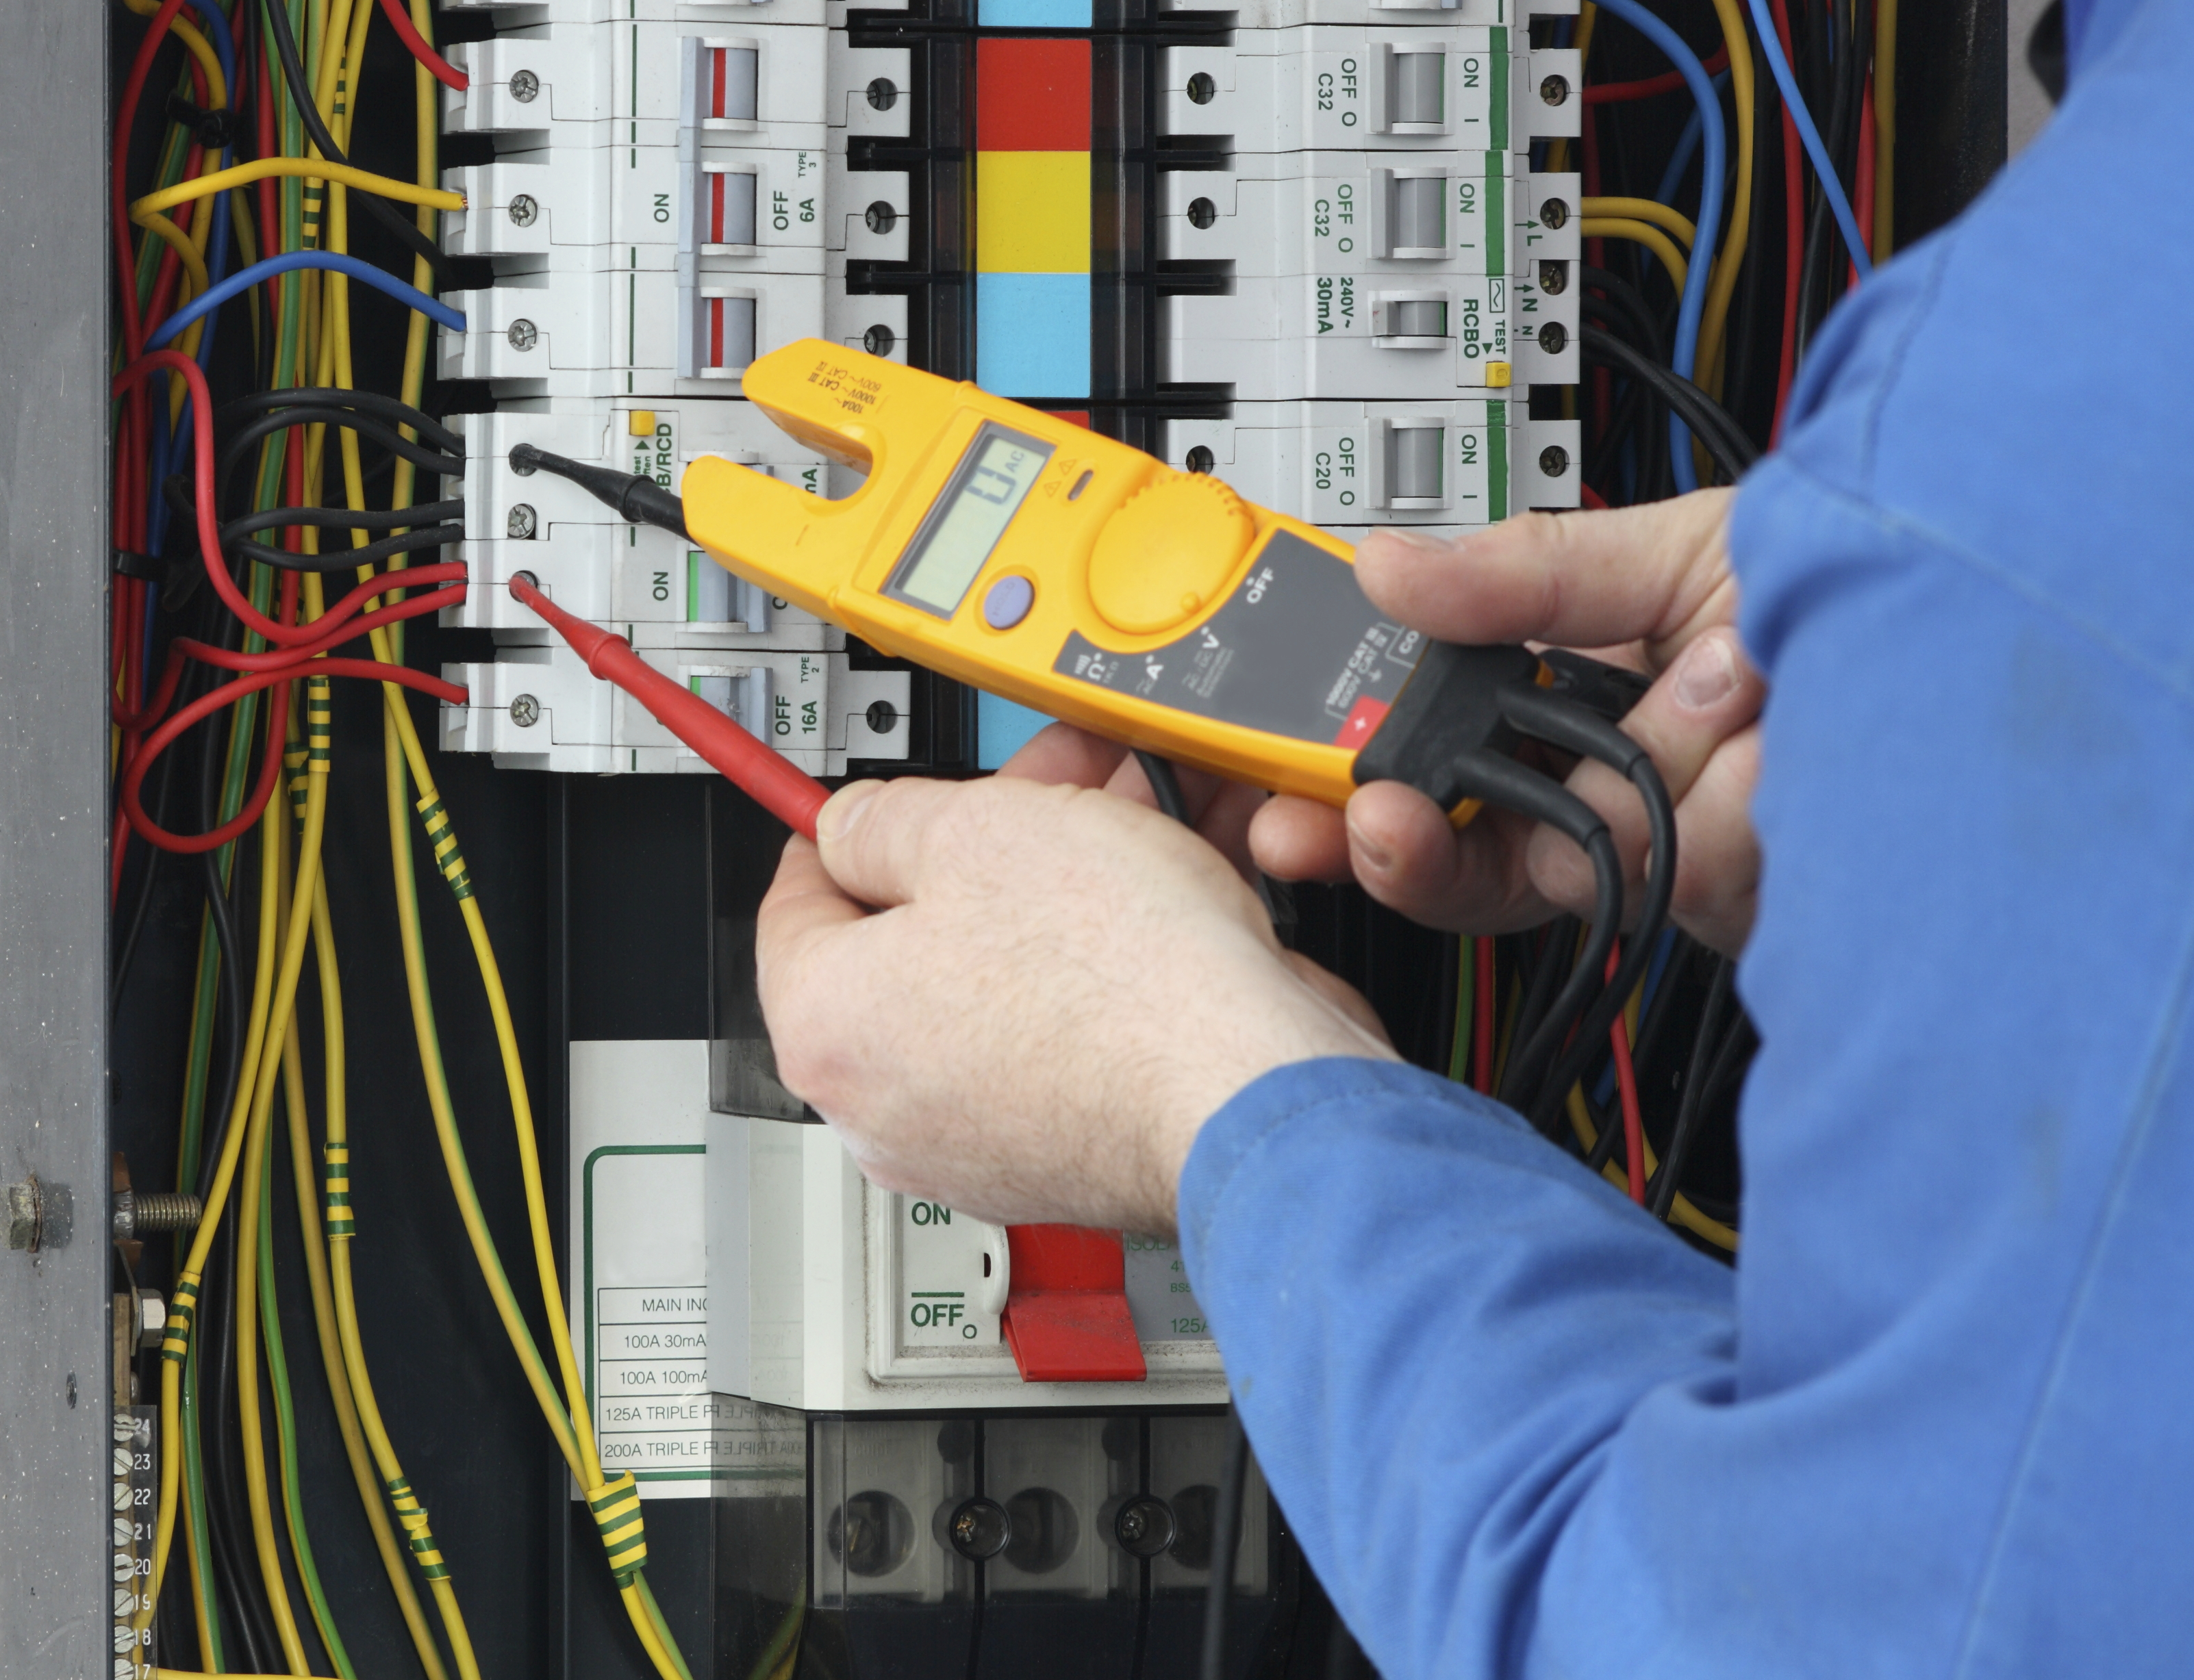 Electrical Wiring Inspections electrical wiring inspections electrical safety inspections excel electrical wiring at n-0.co